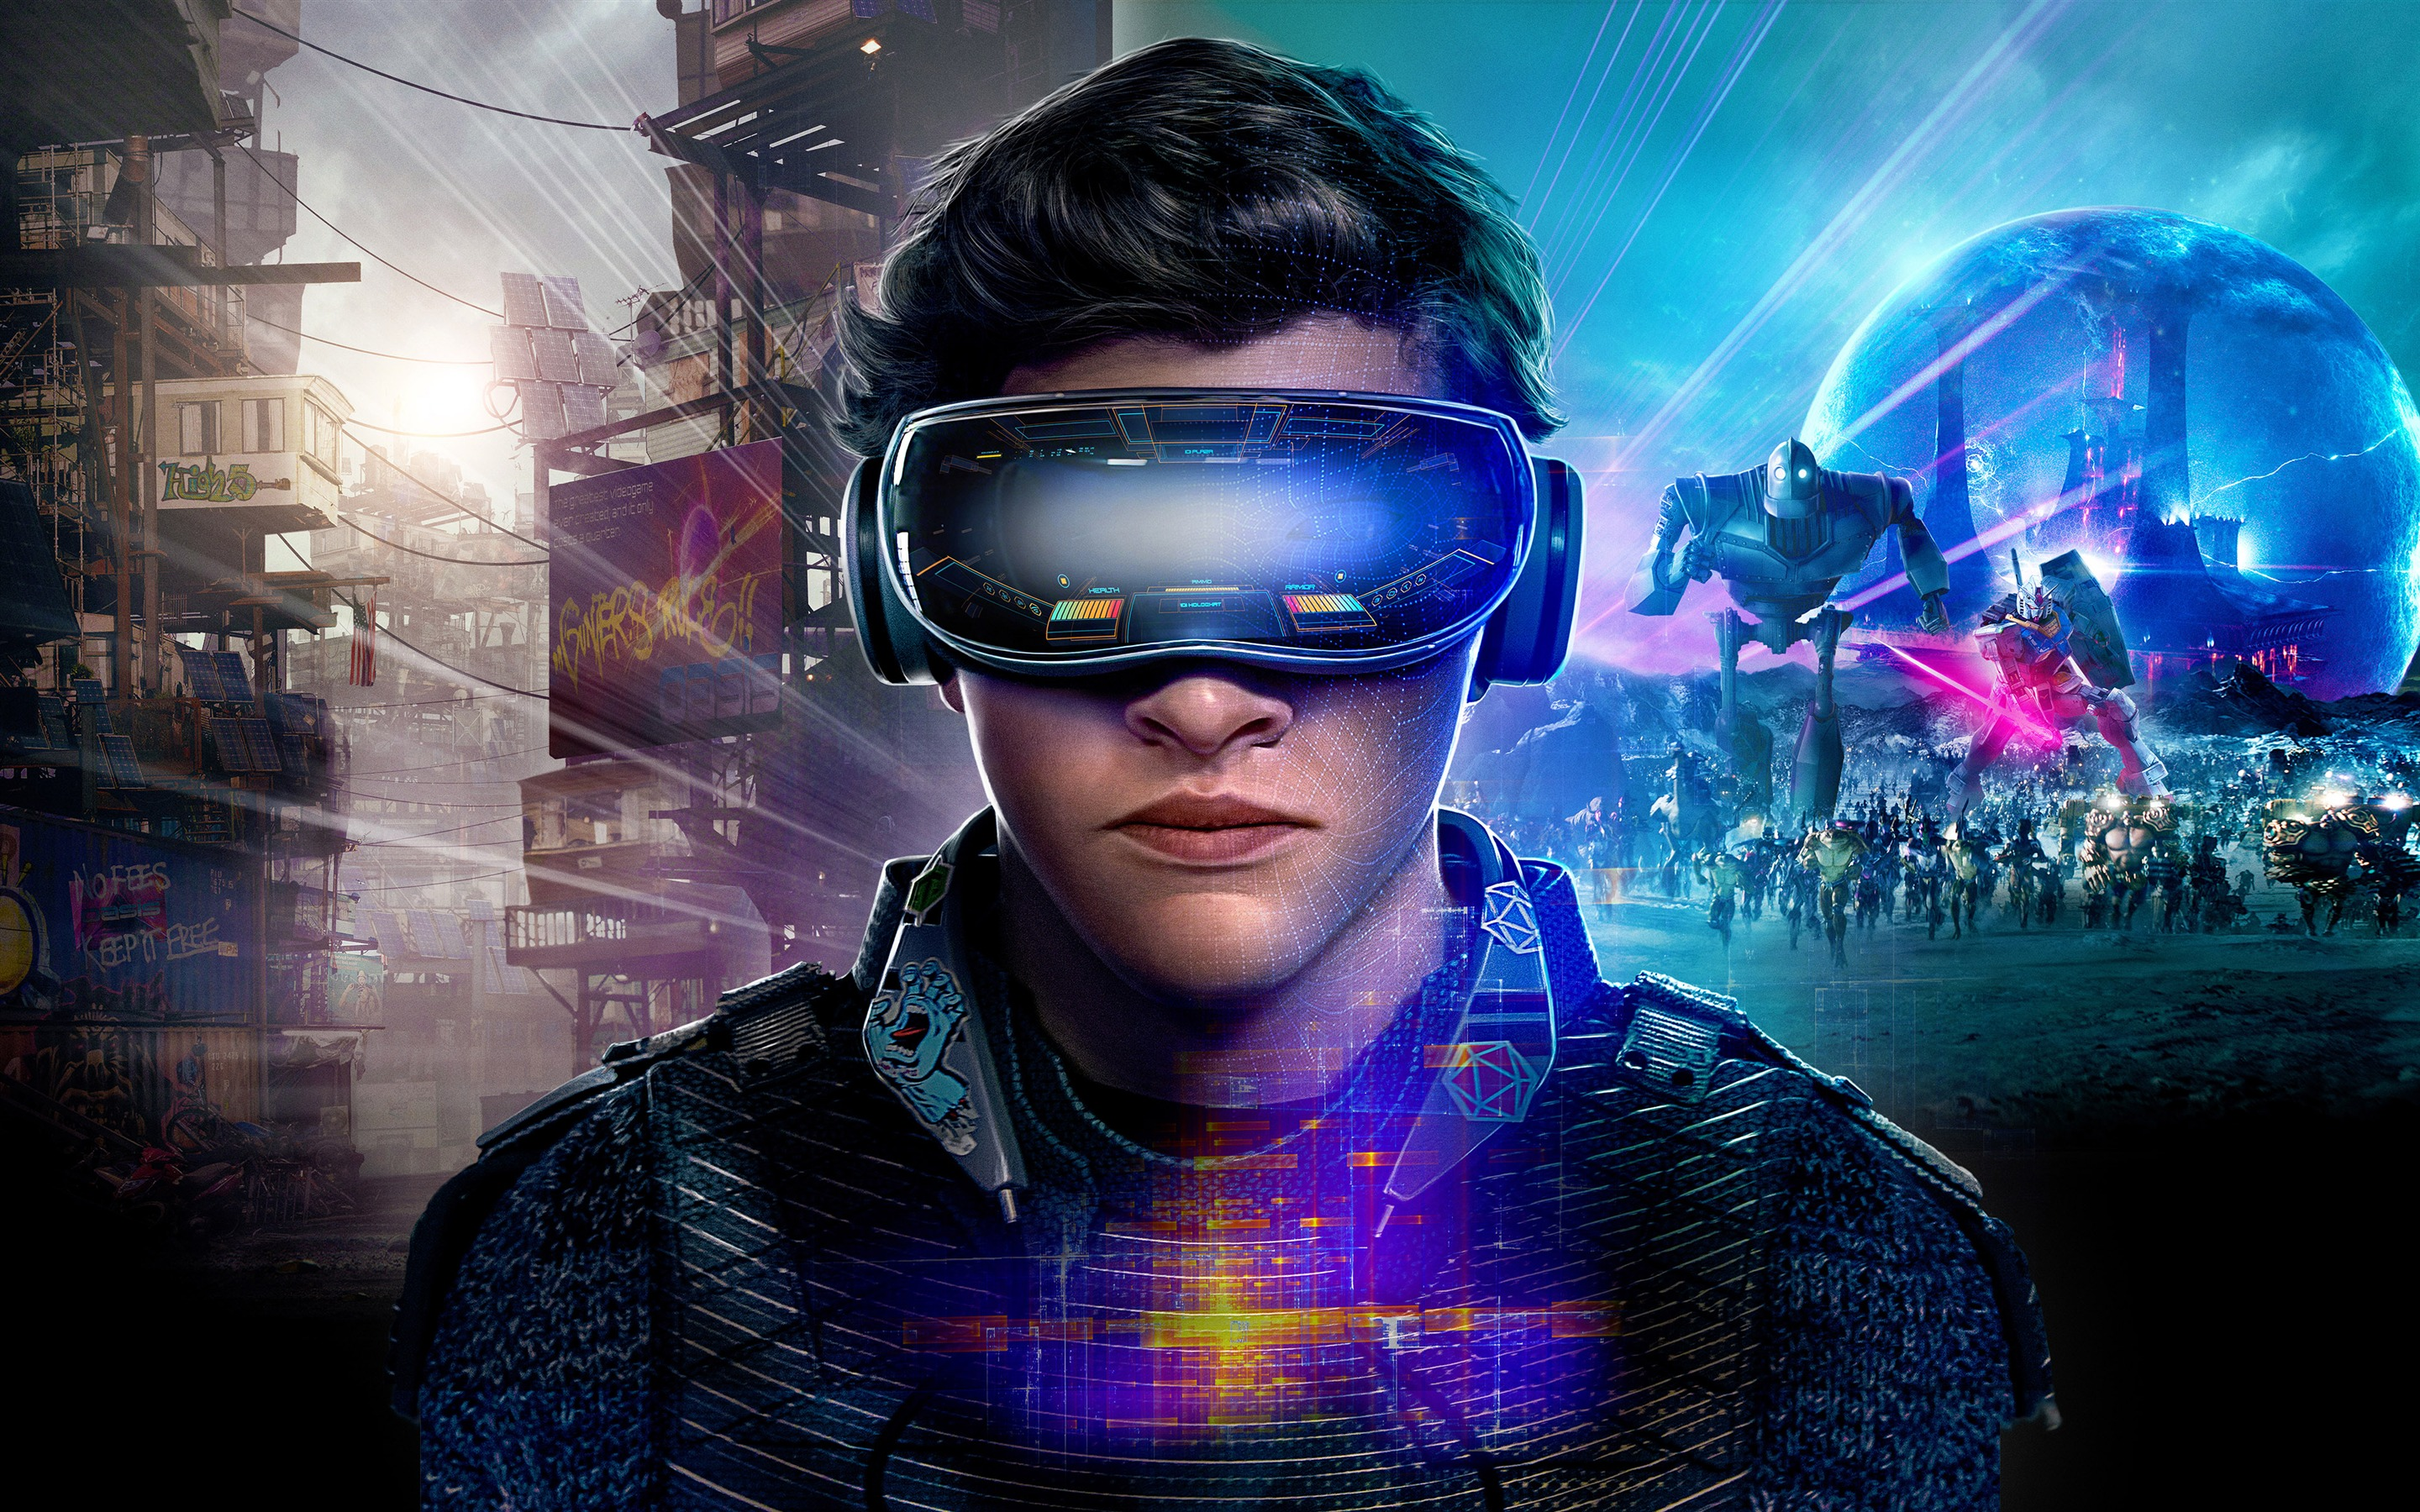 Ready player one VR 4K Movie 2018-2880x1800 Download